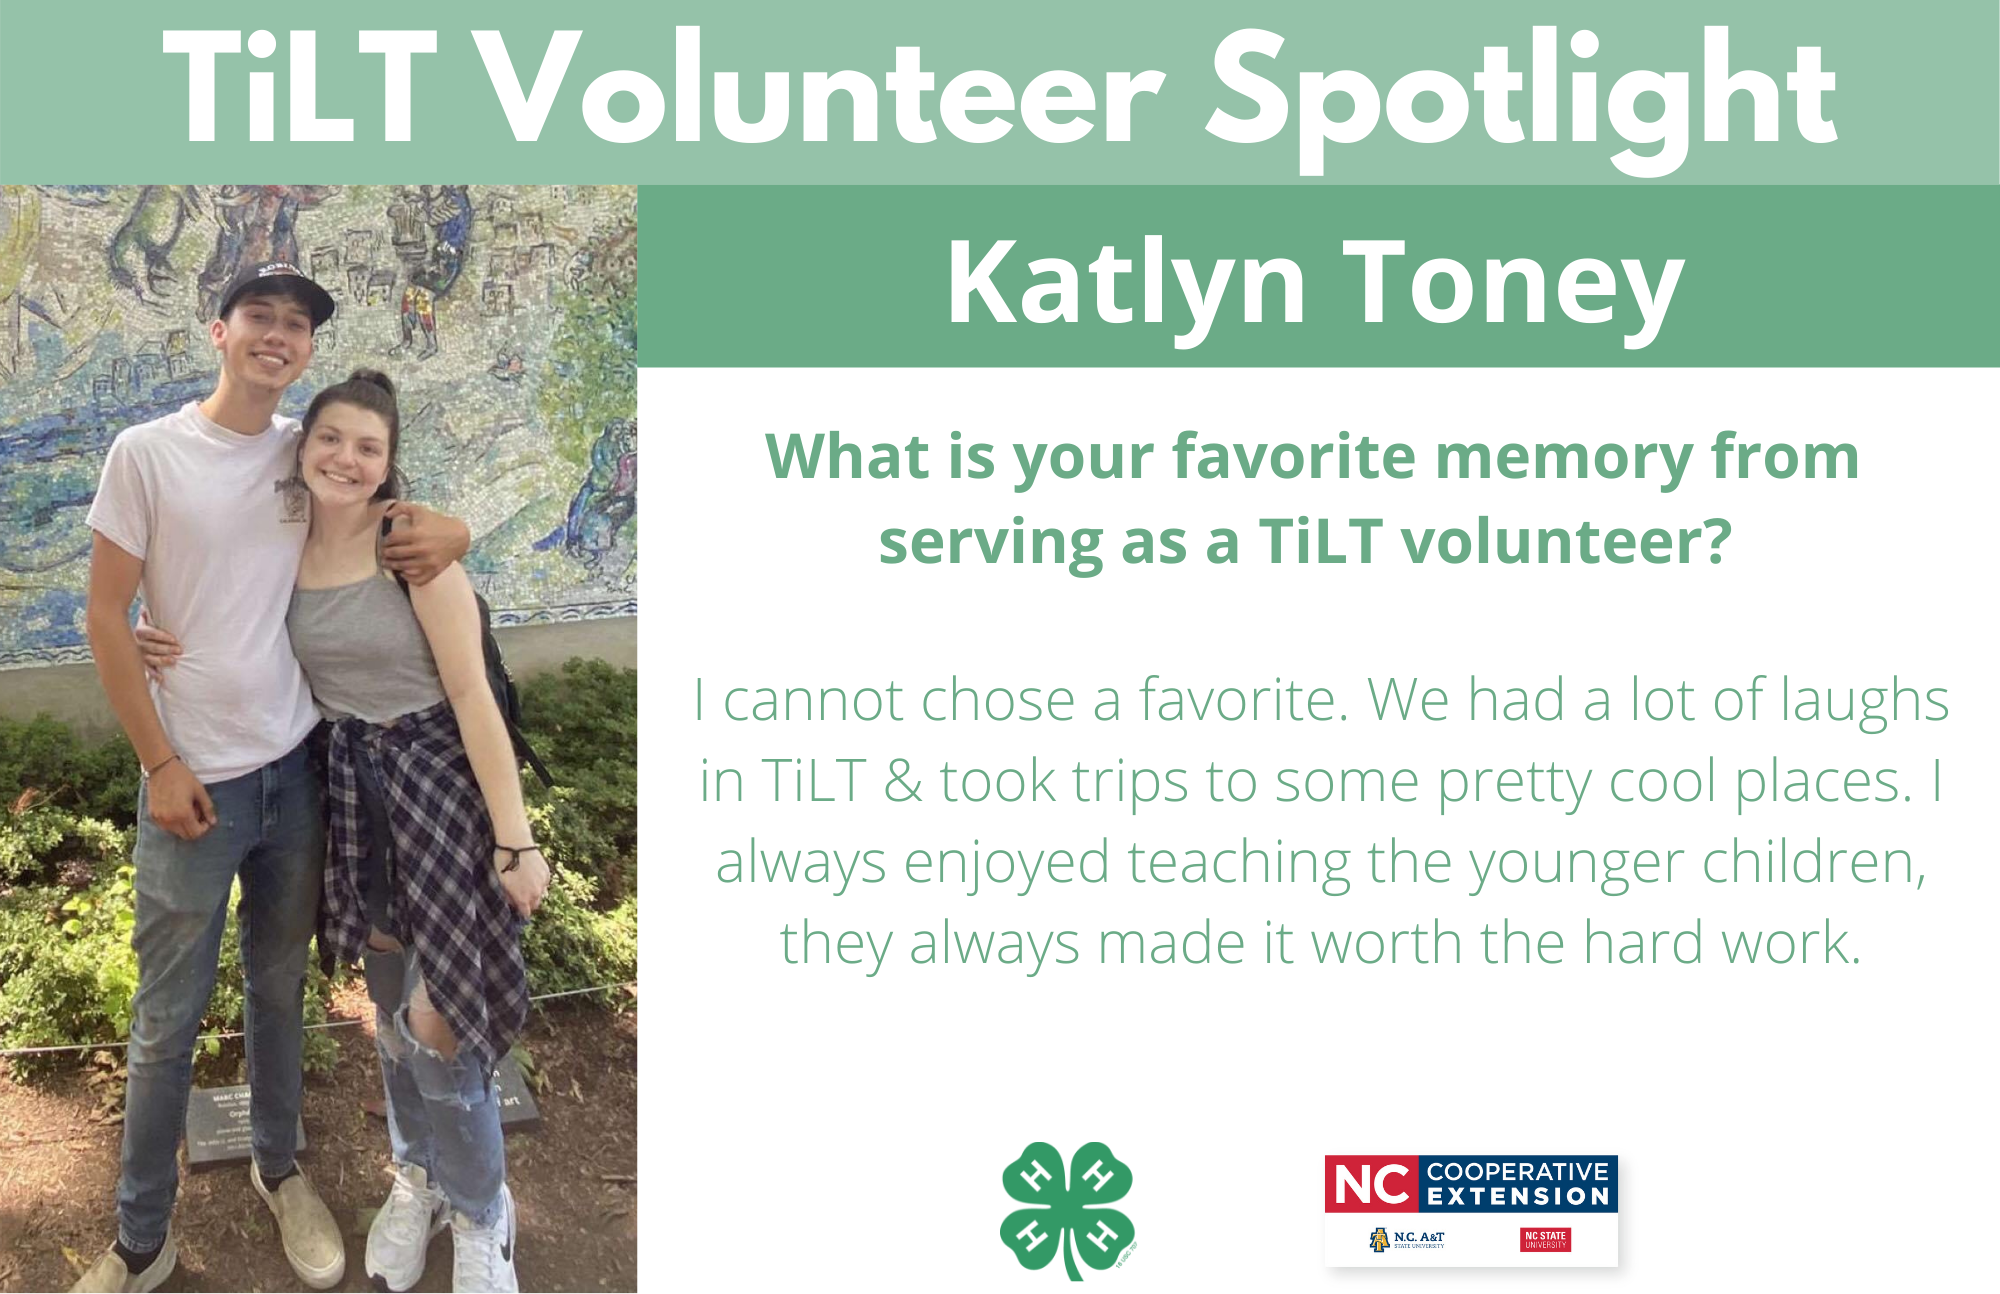 Headshot of Katlyn Toney with following text to the right of image. TiLT Volunteer Spotlight. Katlyn Toney. What is your favorite memory from serving as a TiLT volunteer? I cannot chose a favorite. We had a lot of laughs in TiLT & took trips to some pretty cool places. I always enjoyed teaching the younger children, they always made it worth the hard work.